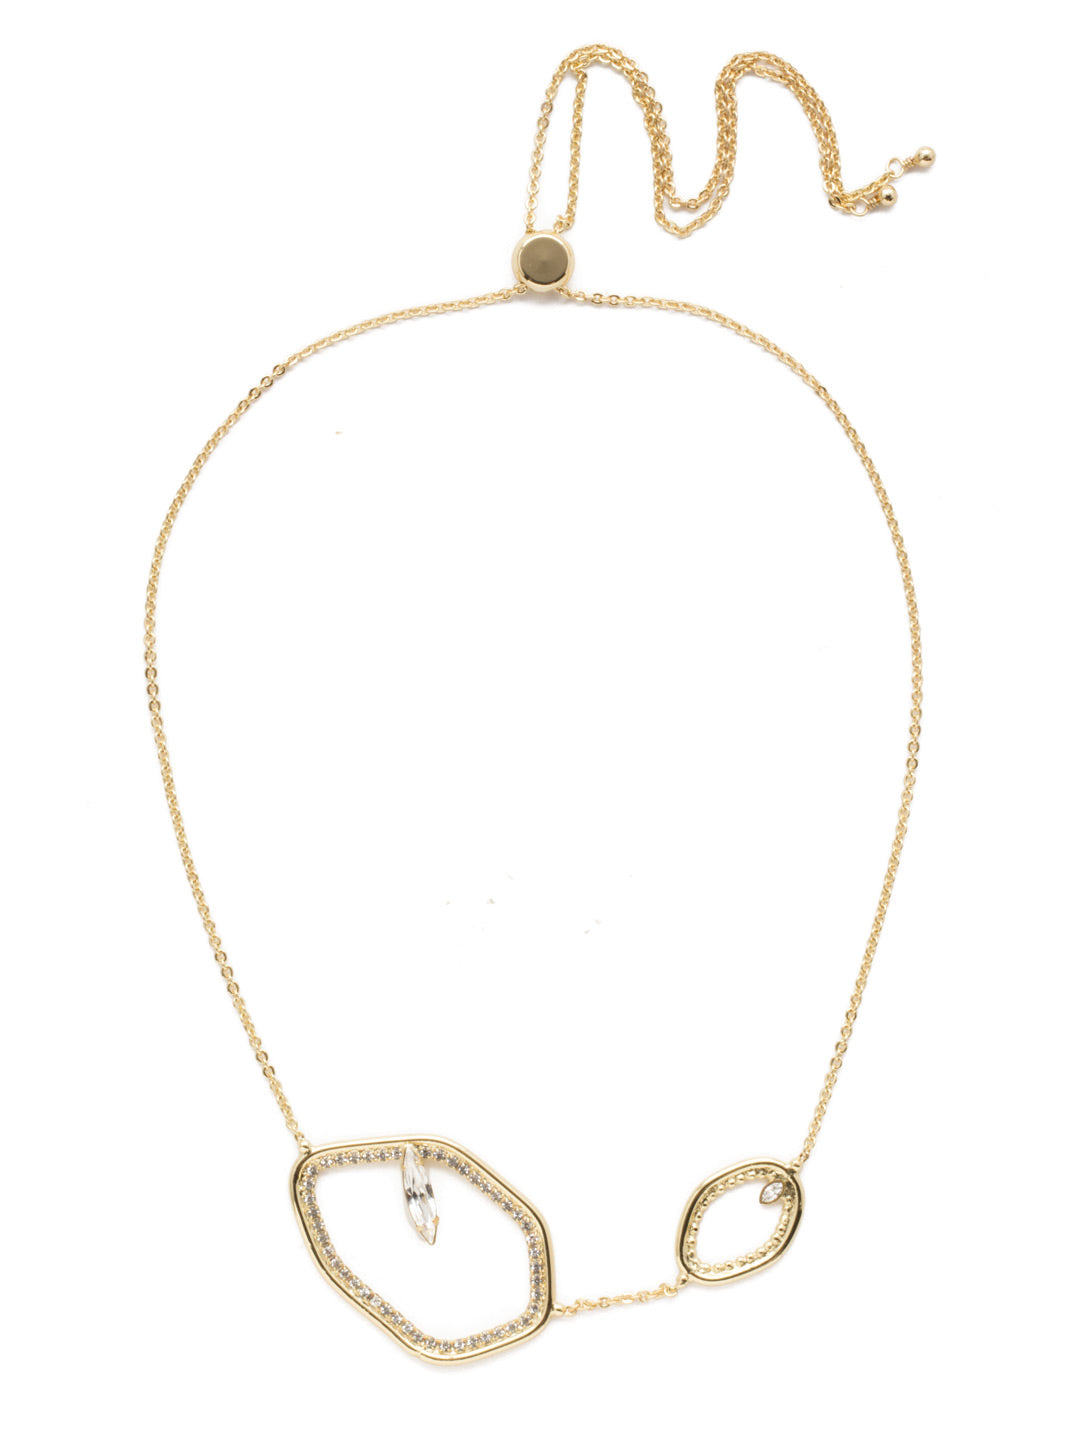 Aphelia Crystal Statement Necklace - 4NEK3BGCRY